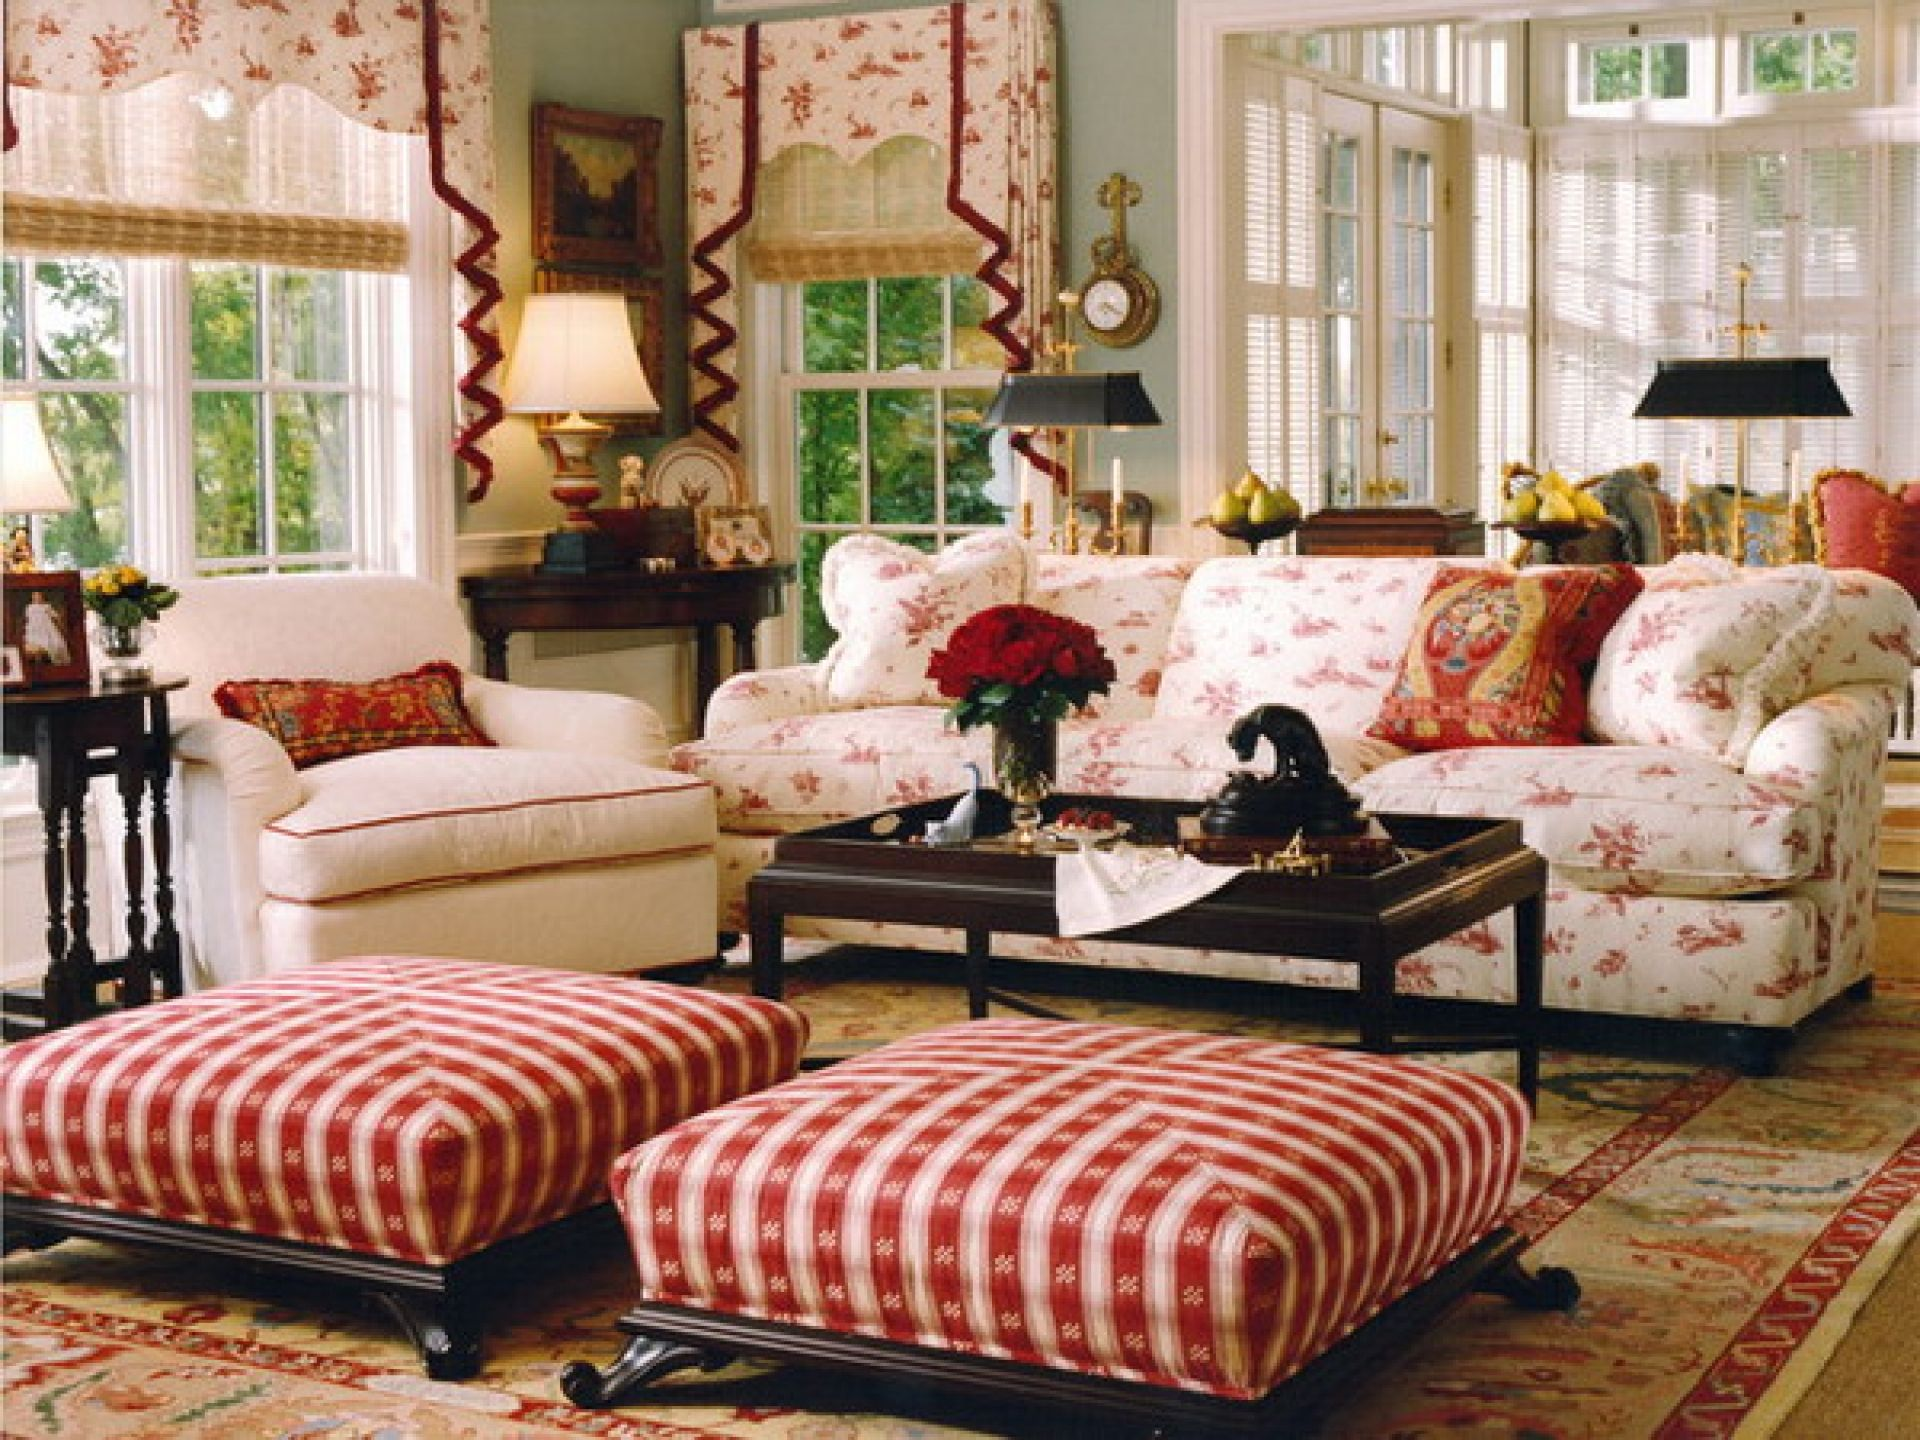 1000 images about room on pinterest english country style | isgif